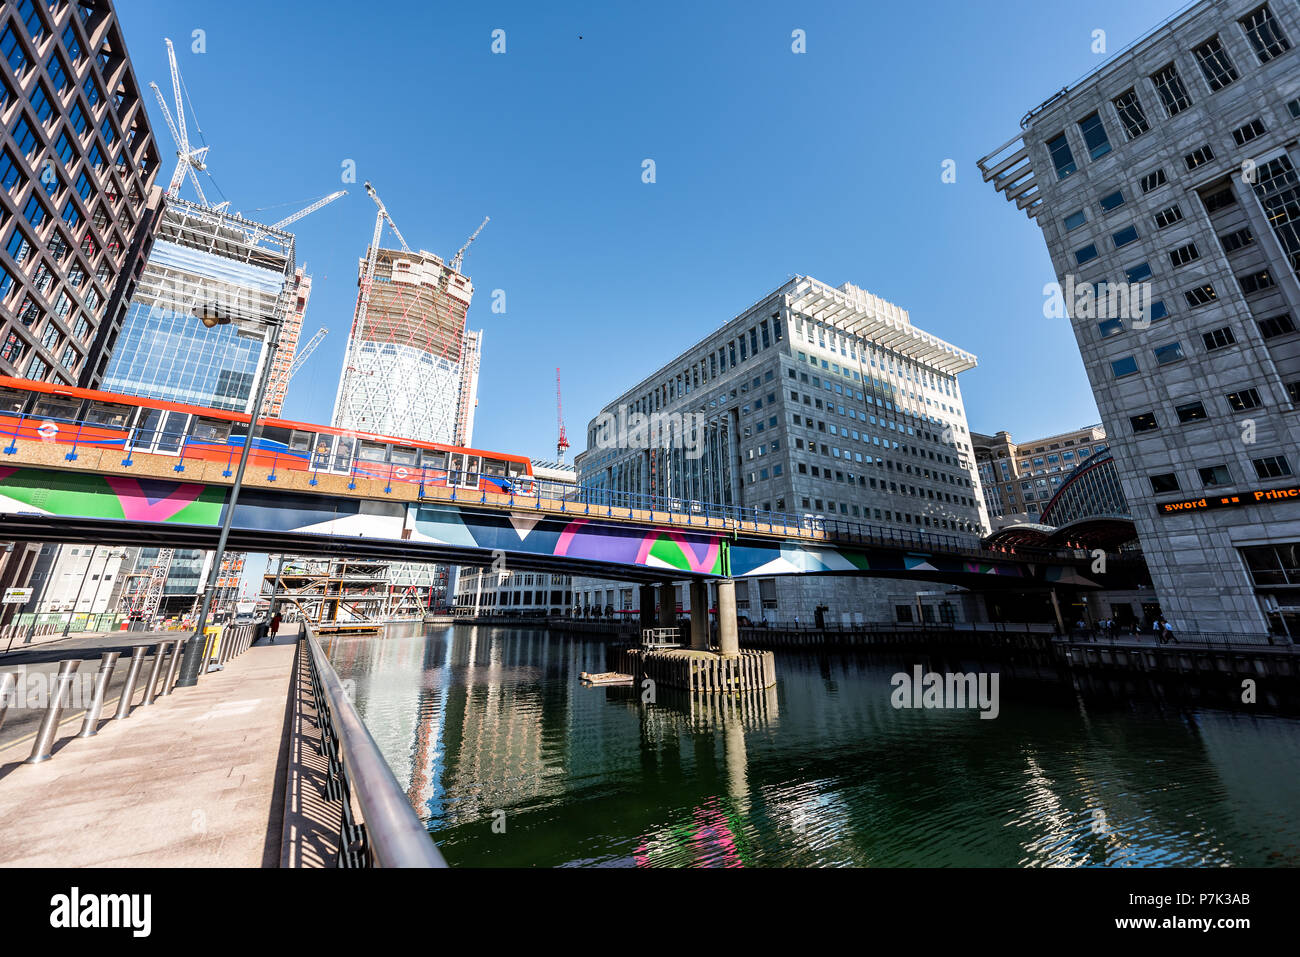 London, UK - June 26, 2018: Cityscape skyline of Canary Wharf Docklands dock construction modern skyscrapers architecture during sunny summer in morni Stock Photo